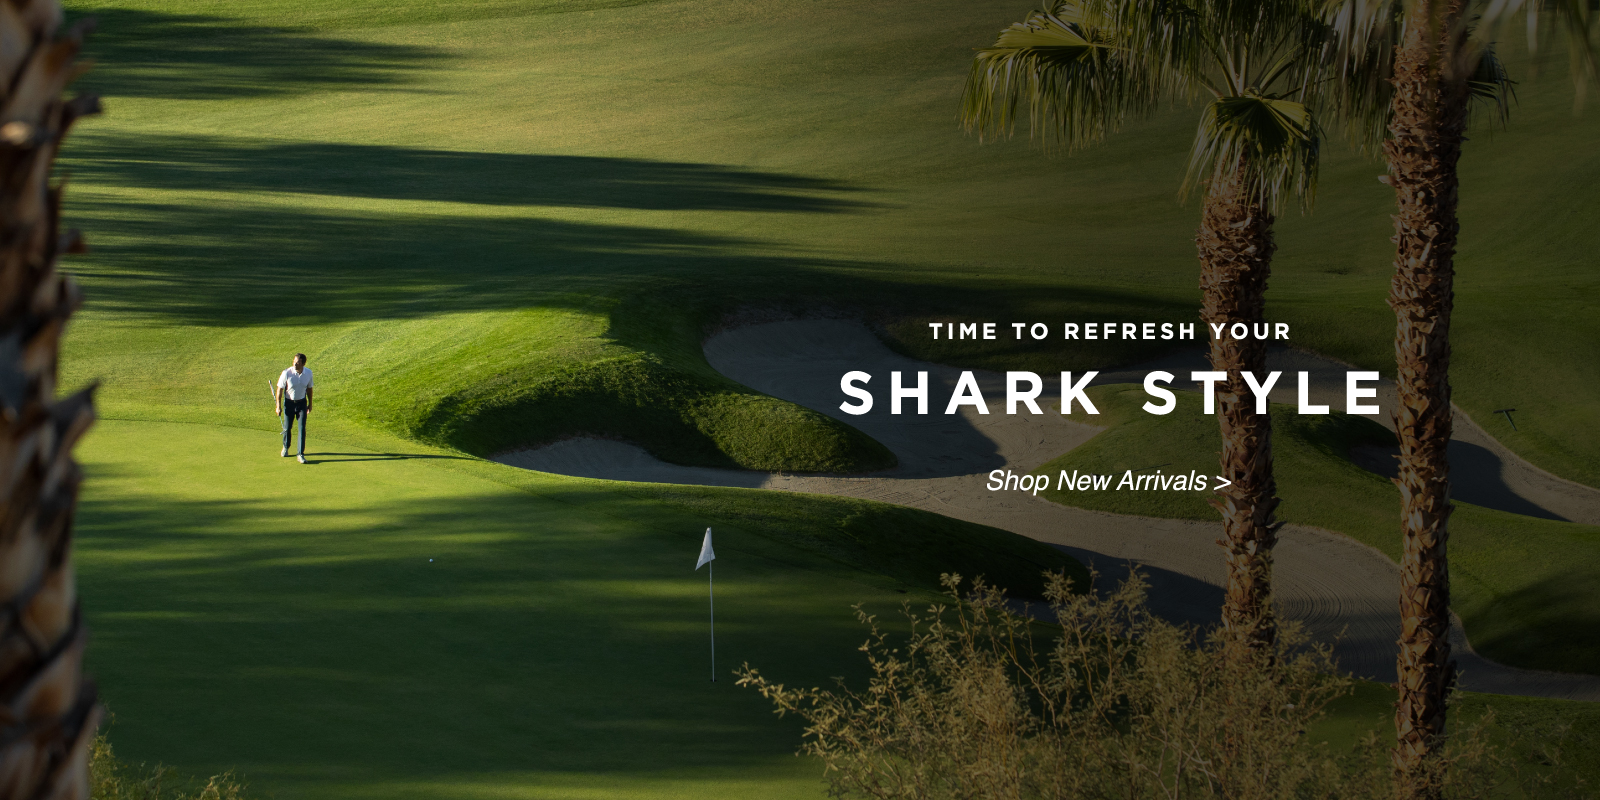 Time to refresh your shark style shop new arrivals